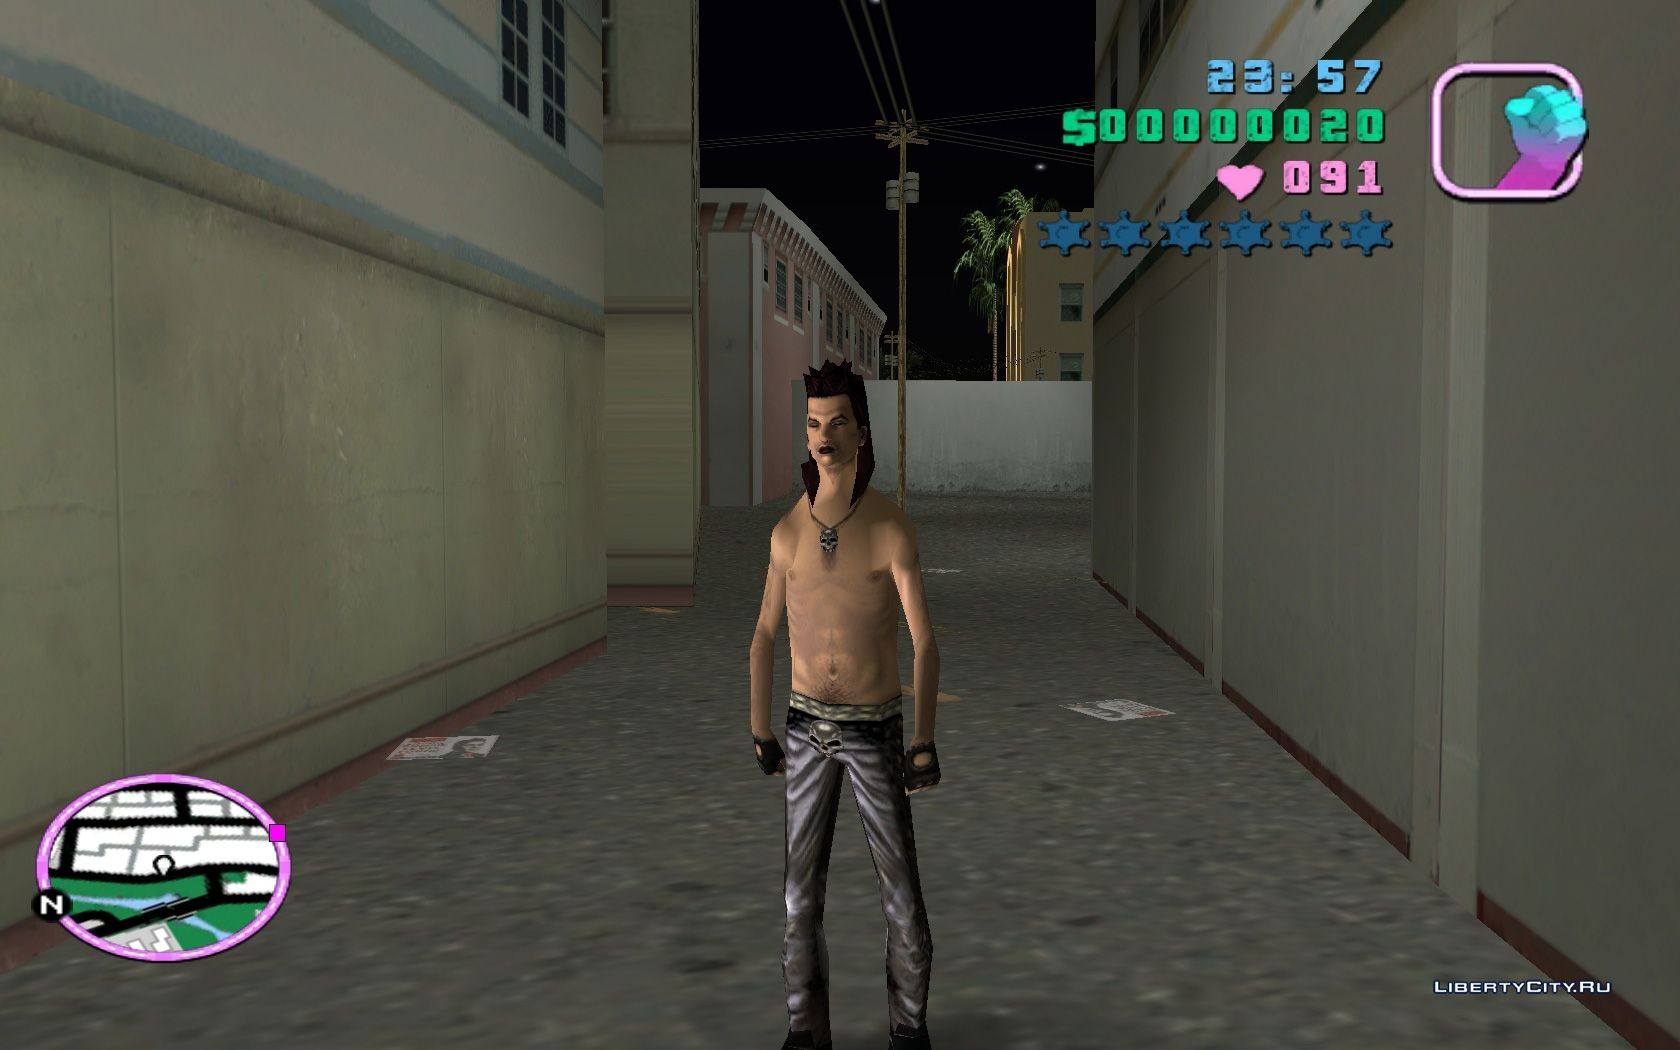 Gta vice city prostitute mod erotic pics